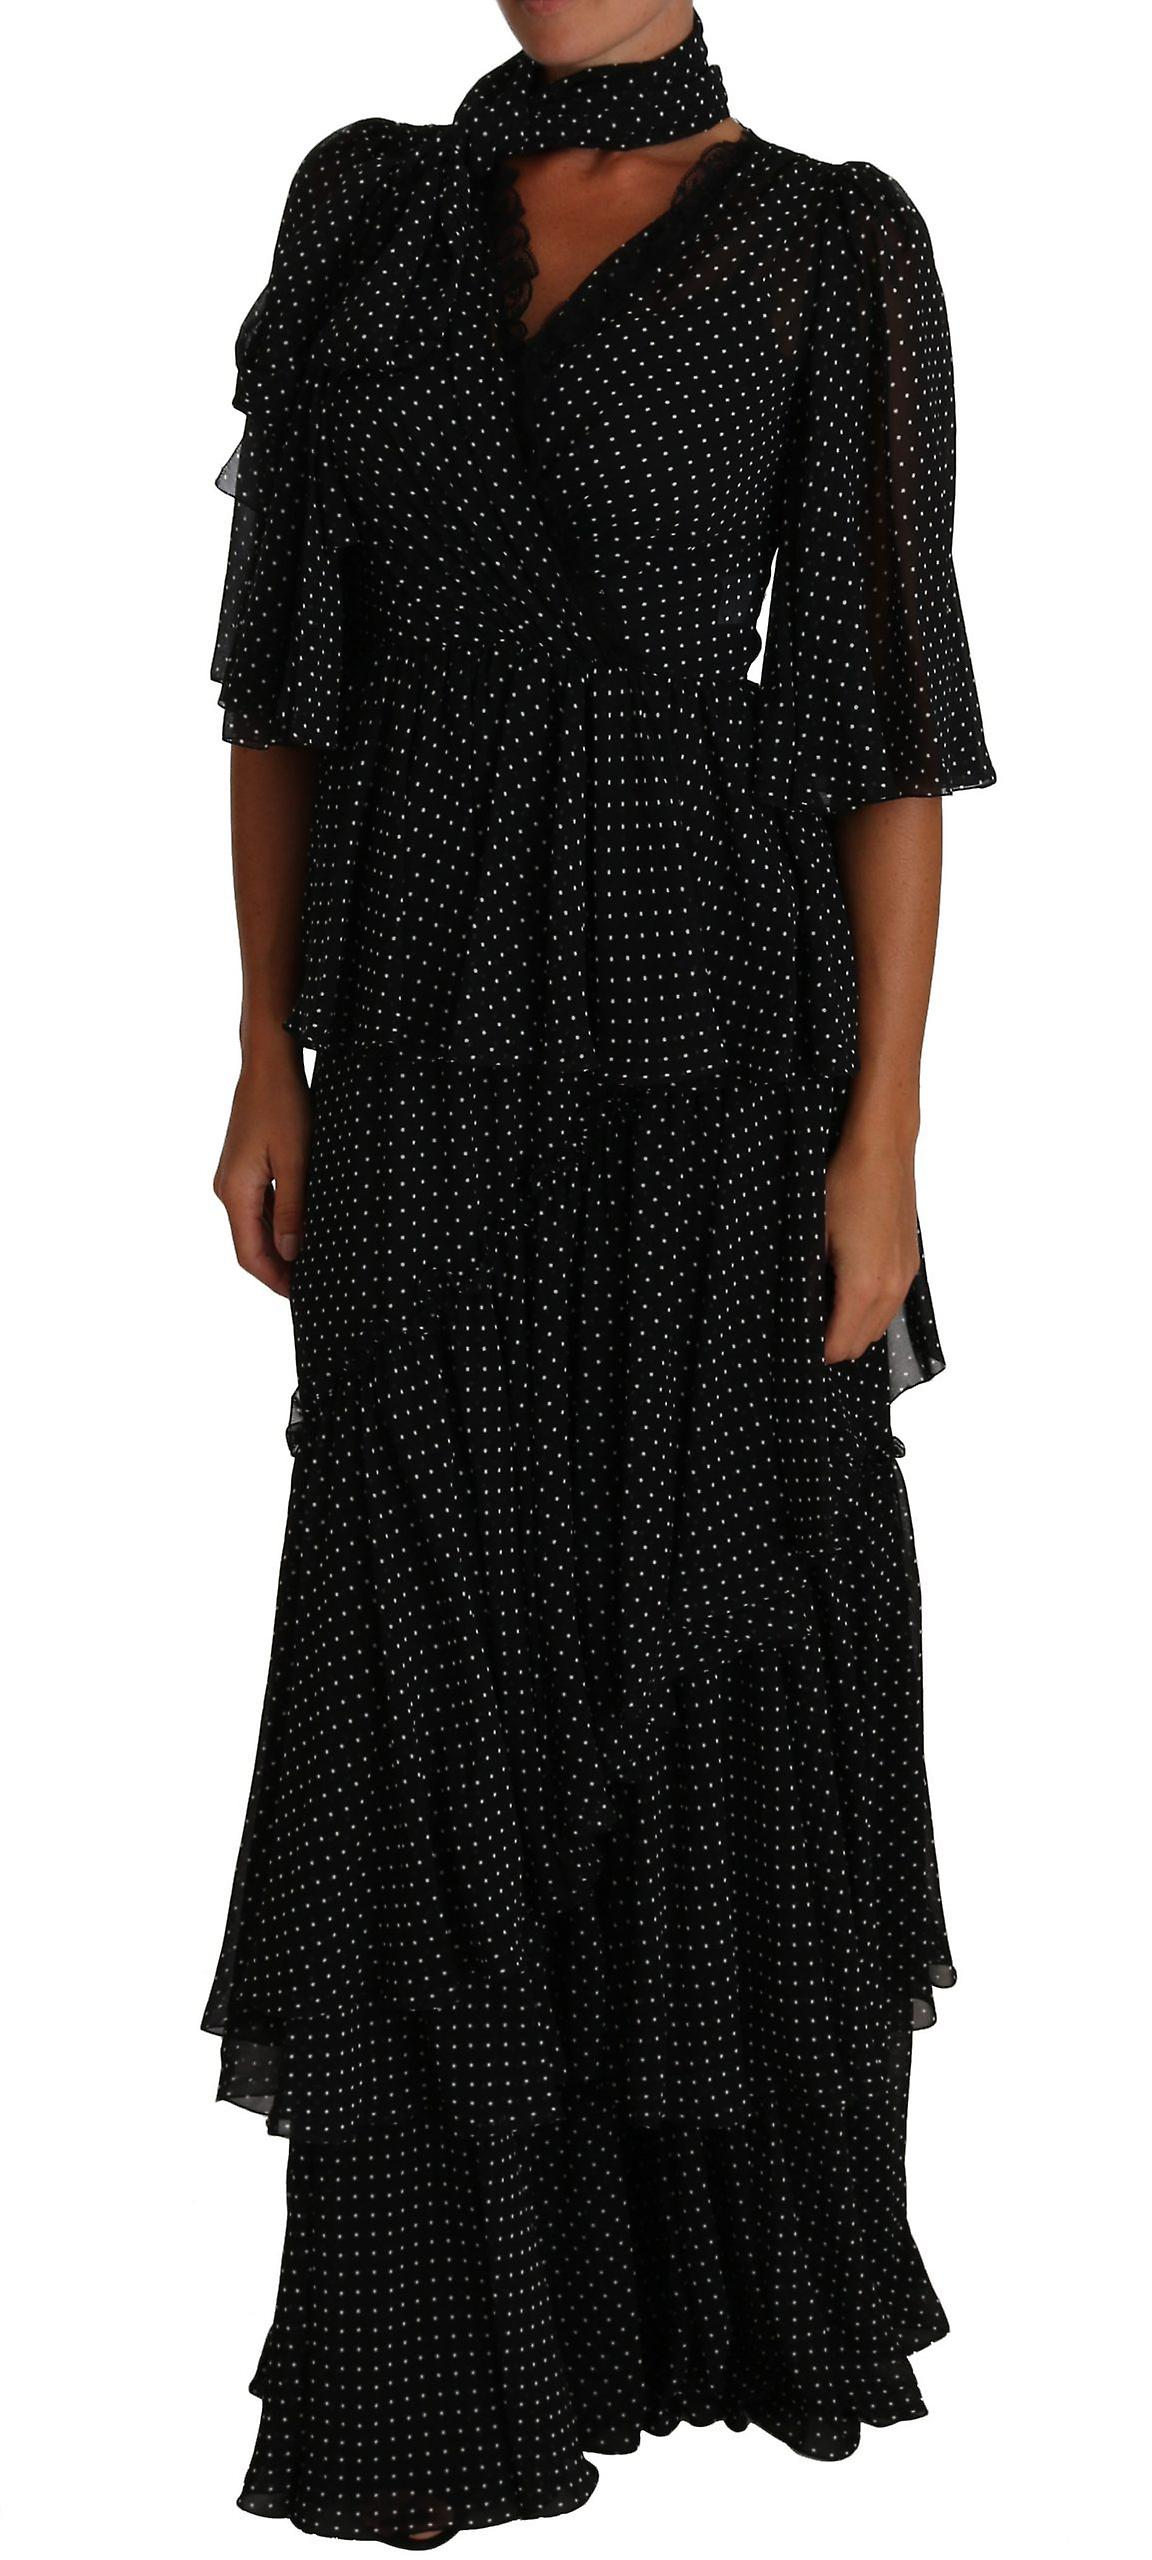 Dolce & Gabbana Black Ball Polka Dot Lace Ruffle Sartoria Dress -- DR15001328 U74Pgx